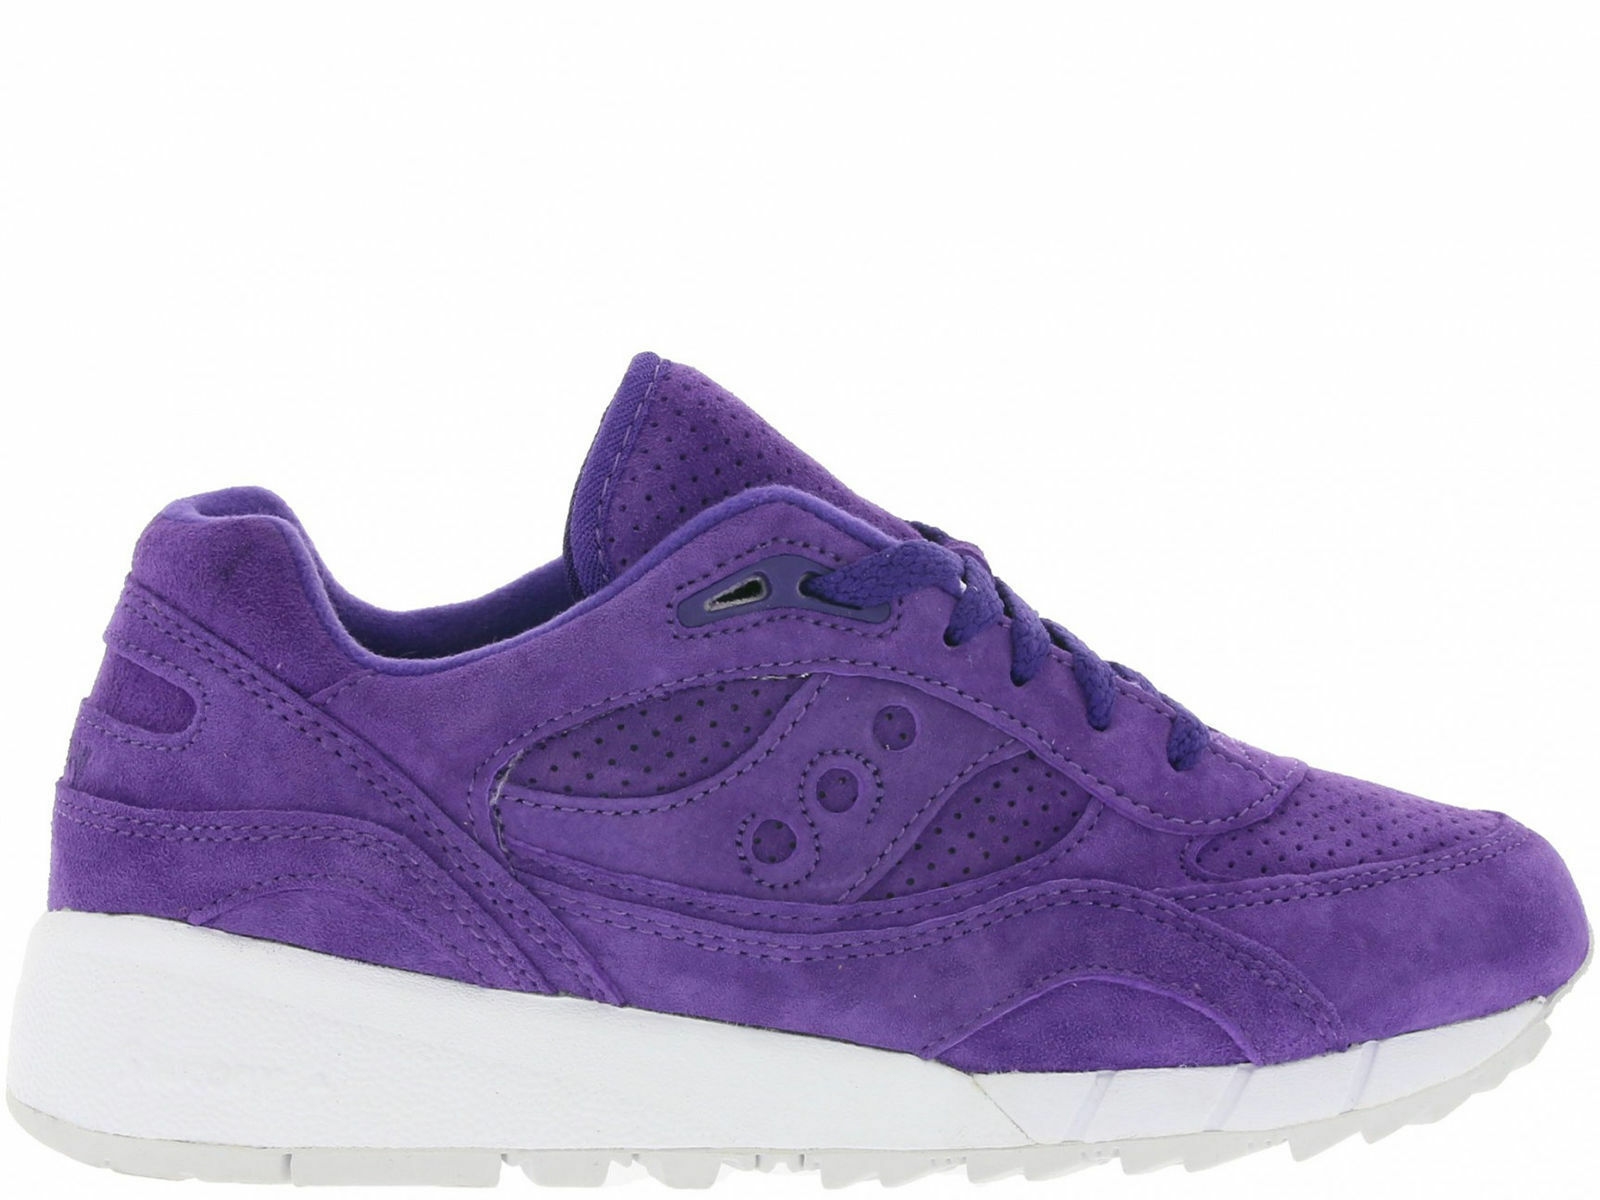 free shipping 8d8ee ffed1 Saucony Men's Shadow 6000 Suede Egg Hunt Purple Shoes S70222-3 a